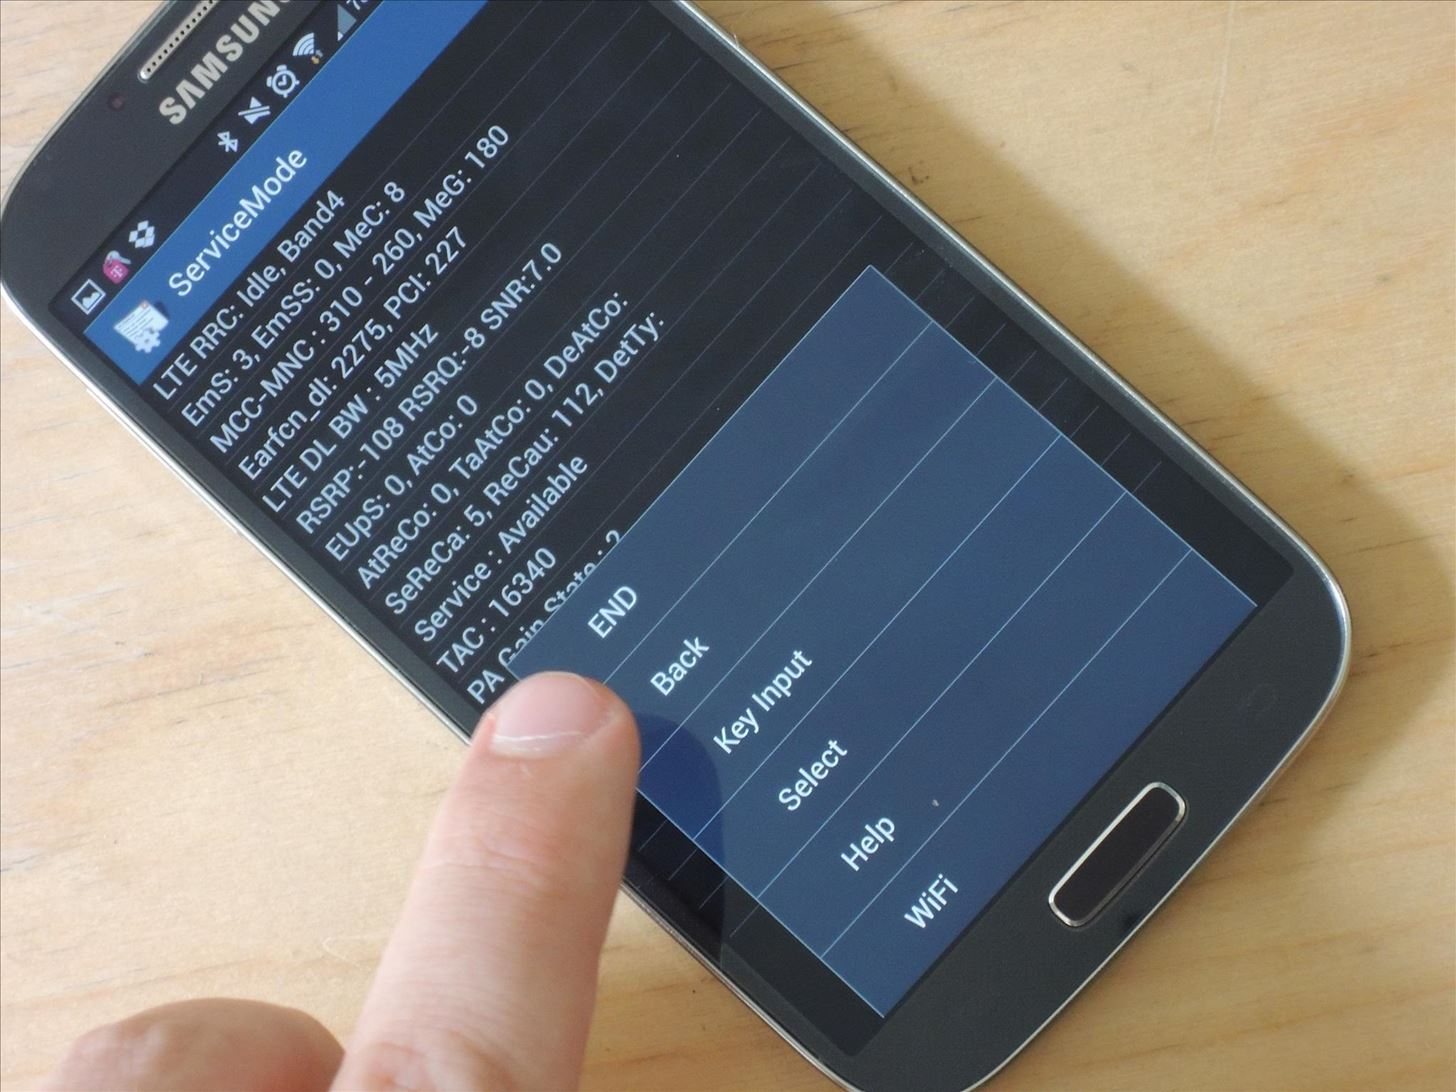 How to Carrier Unlock Your Samsung Galaxy S4 So You Can Use Another